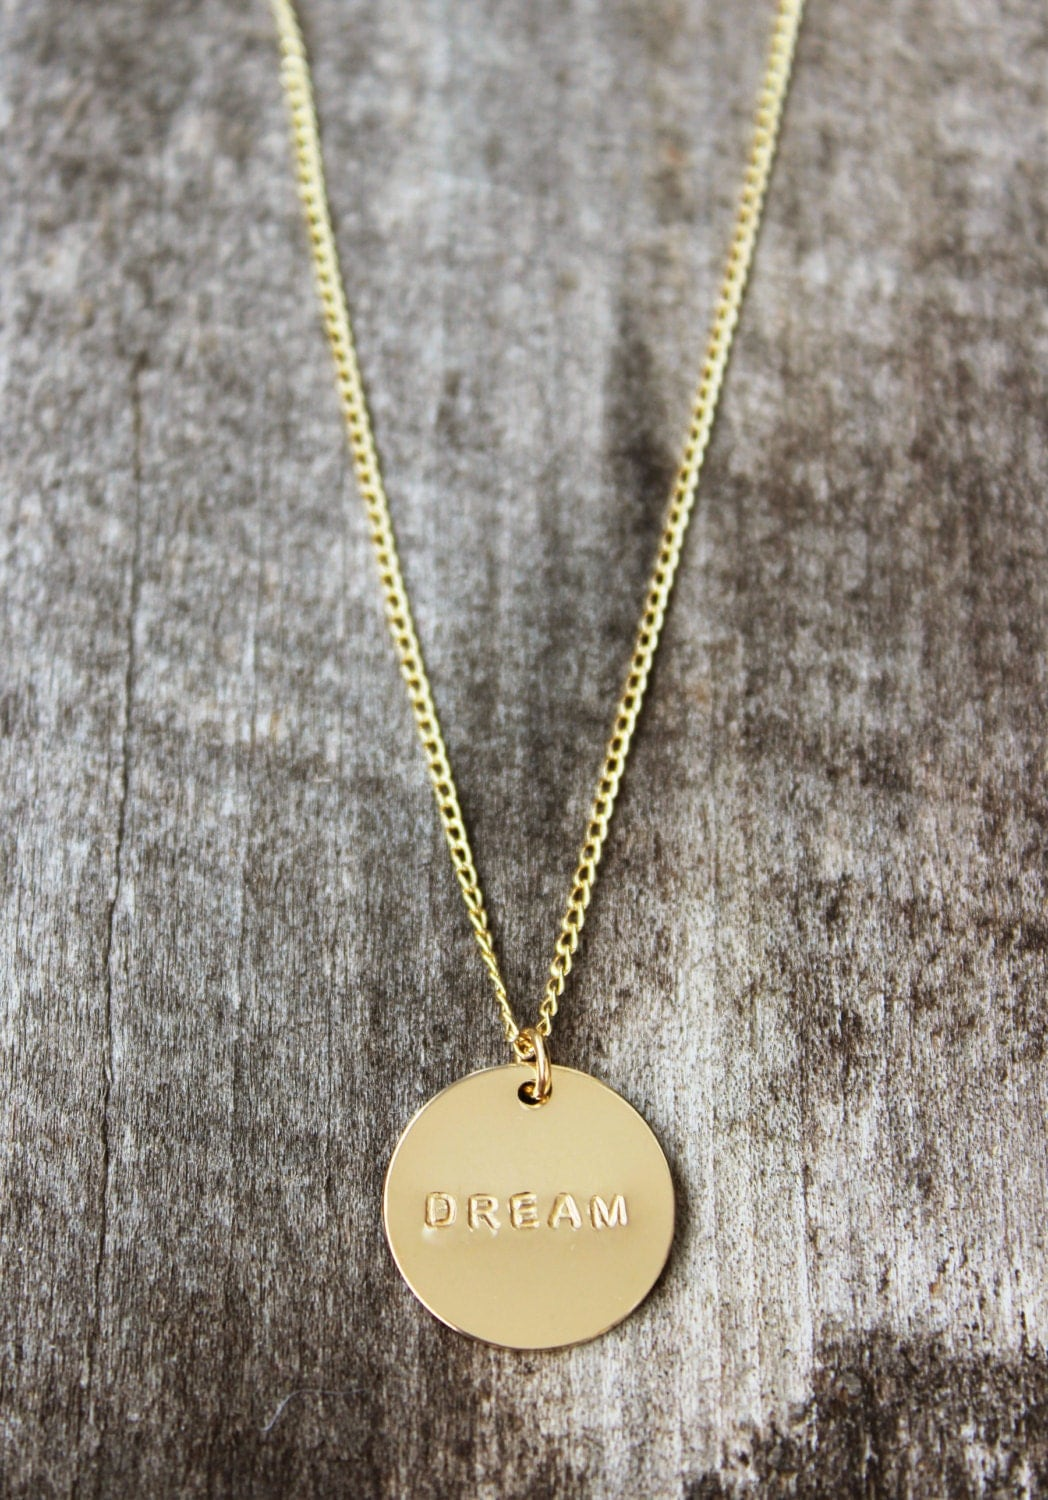 custom text personalized gold disc necklace gold disc. Black Bedroom Furniture Sets. Home Design Ideas